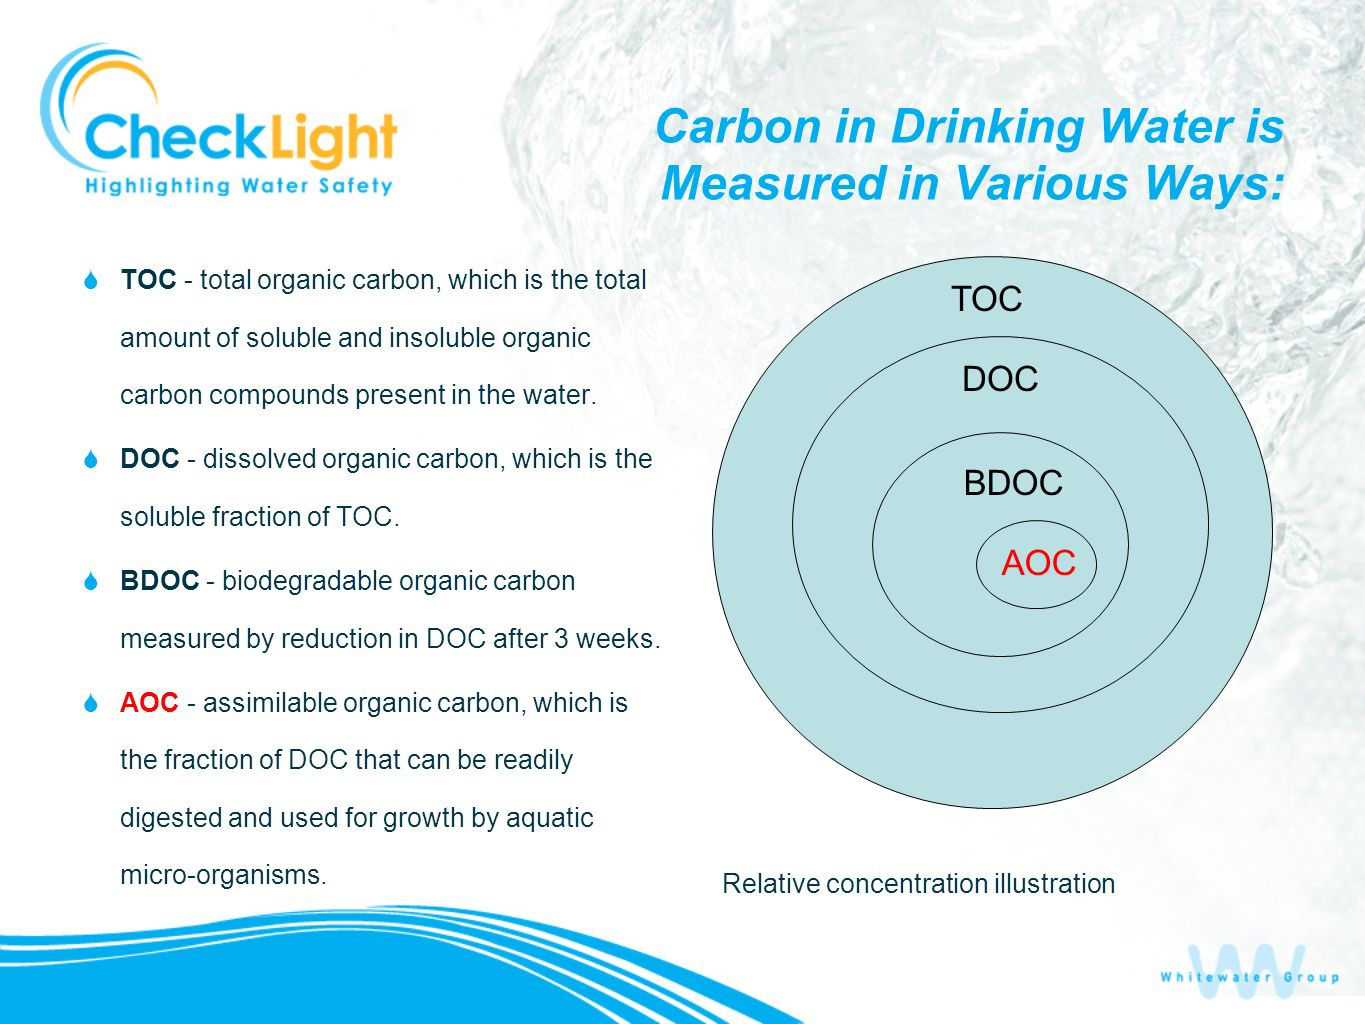 Carbon in Drinking Water is Measured in Various Ways: